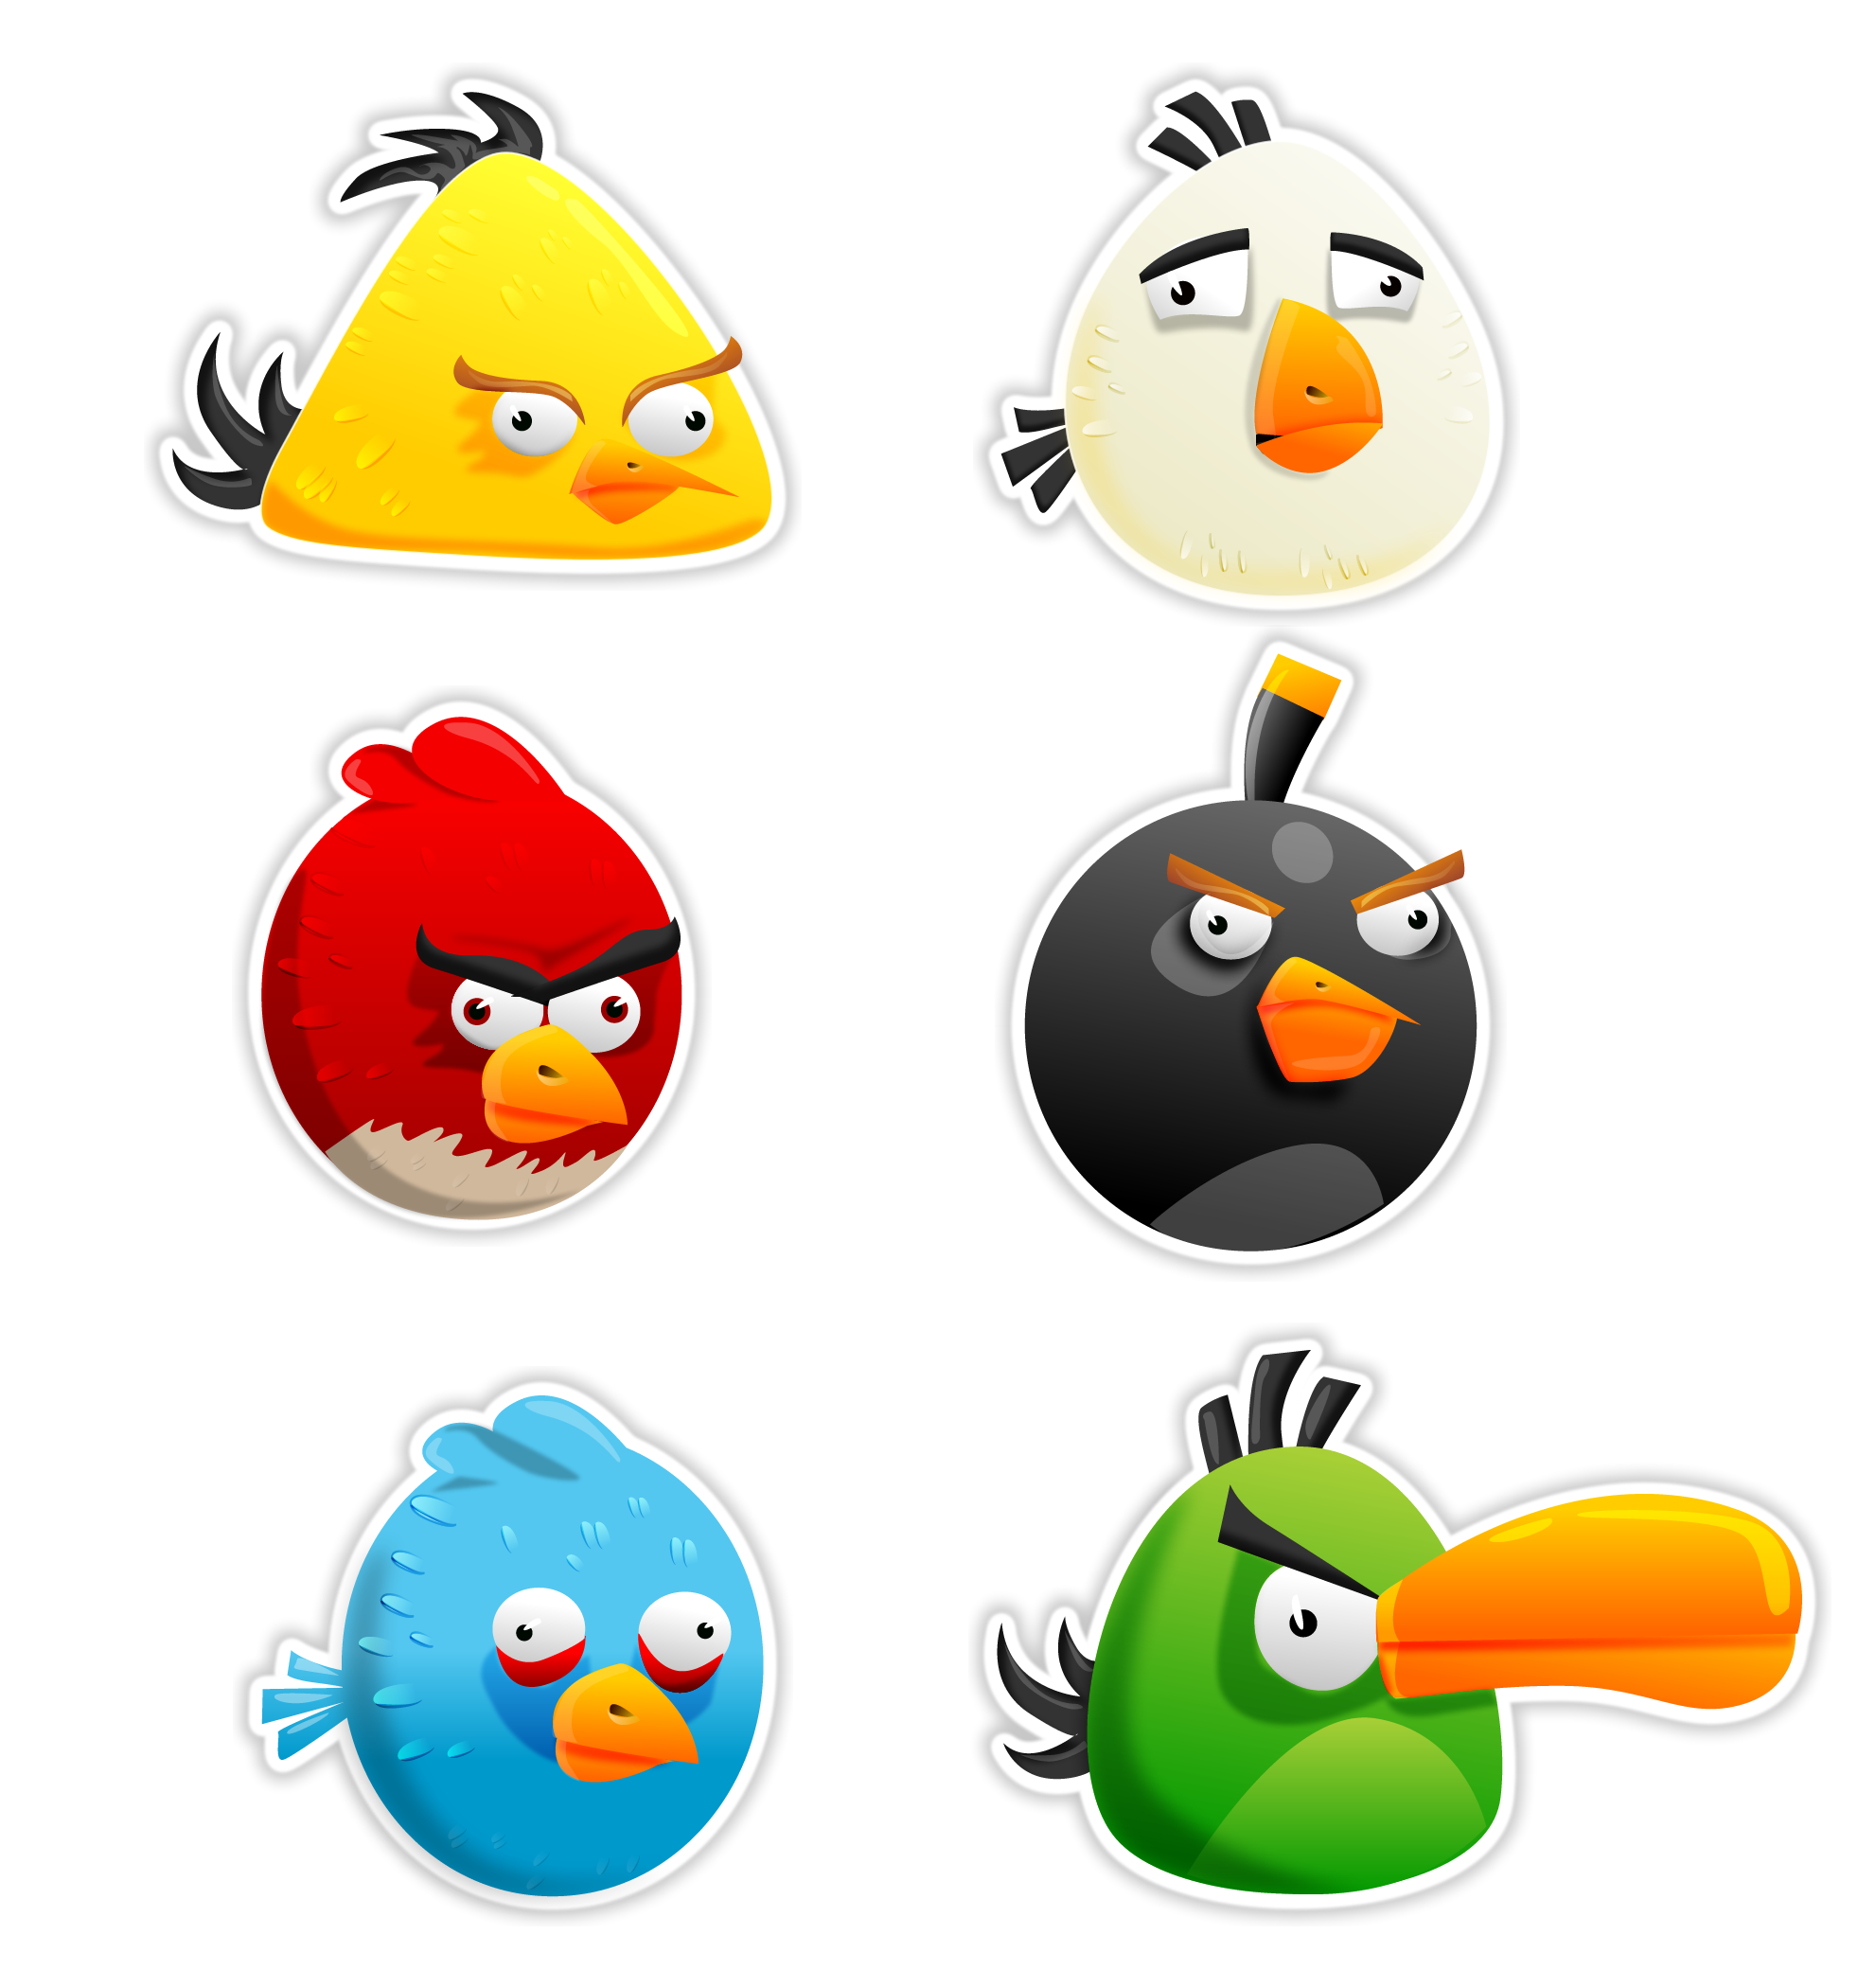 30+ Eye Catching Angry Birds Pictures